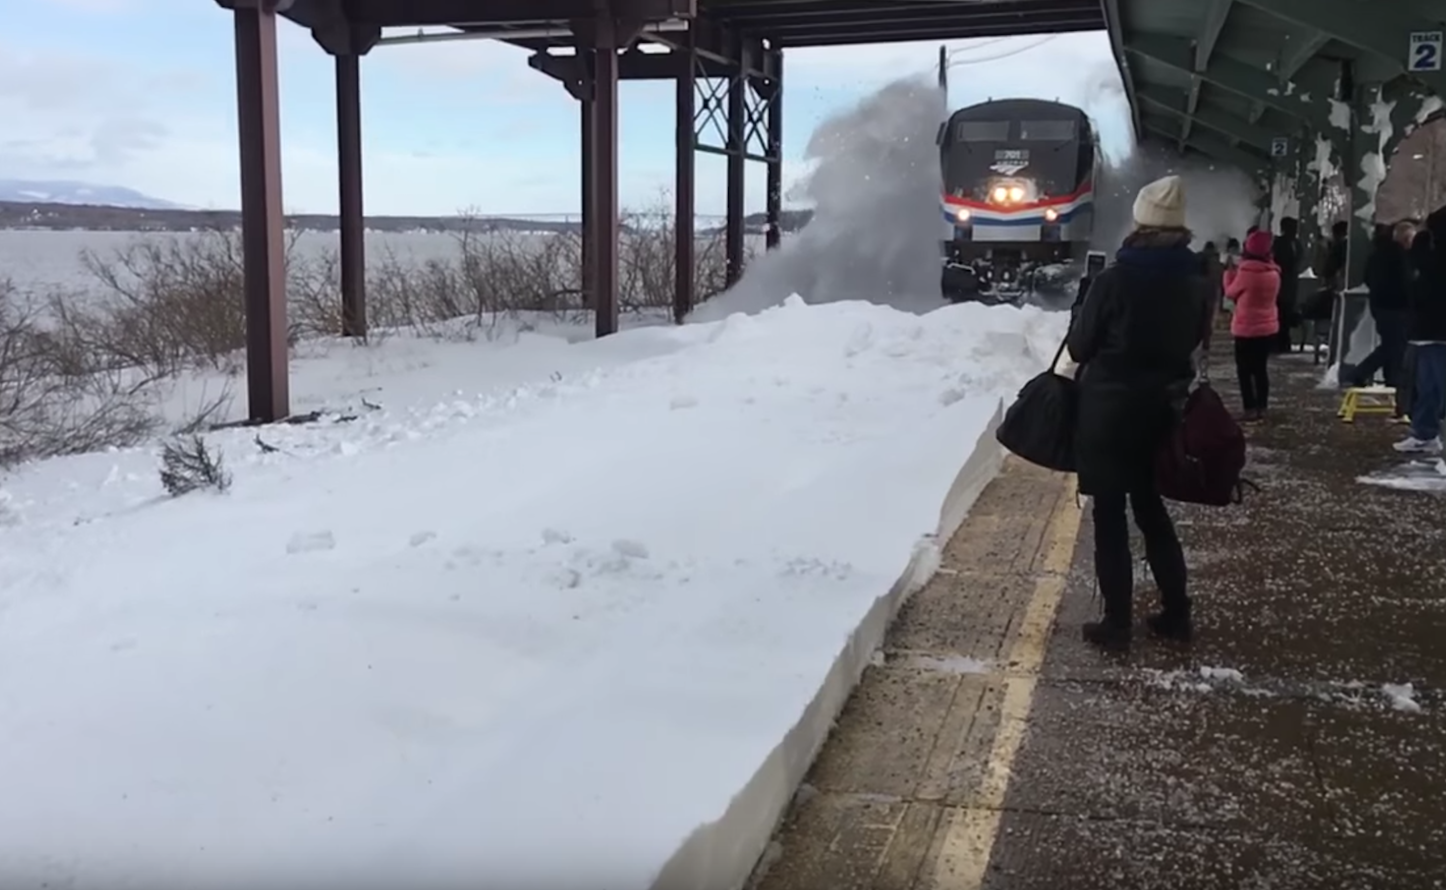 Train arriving at snow filled station